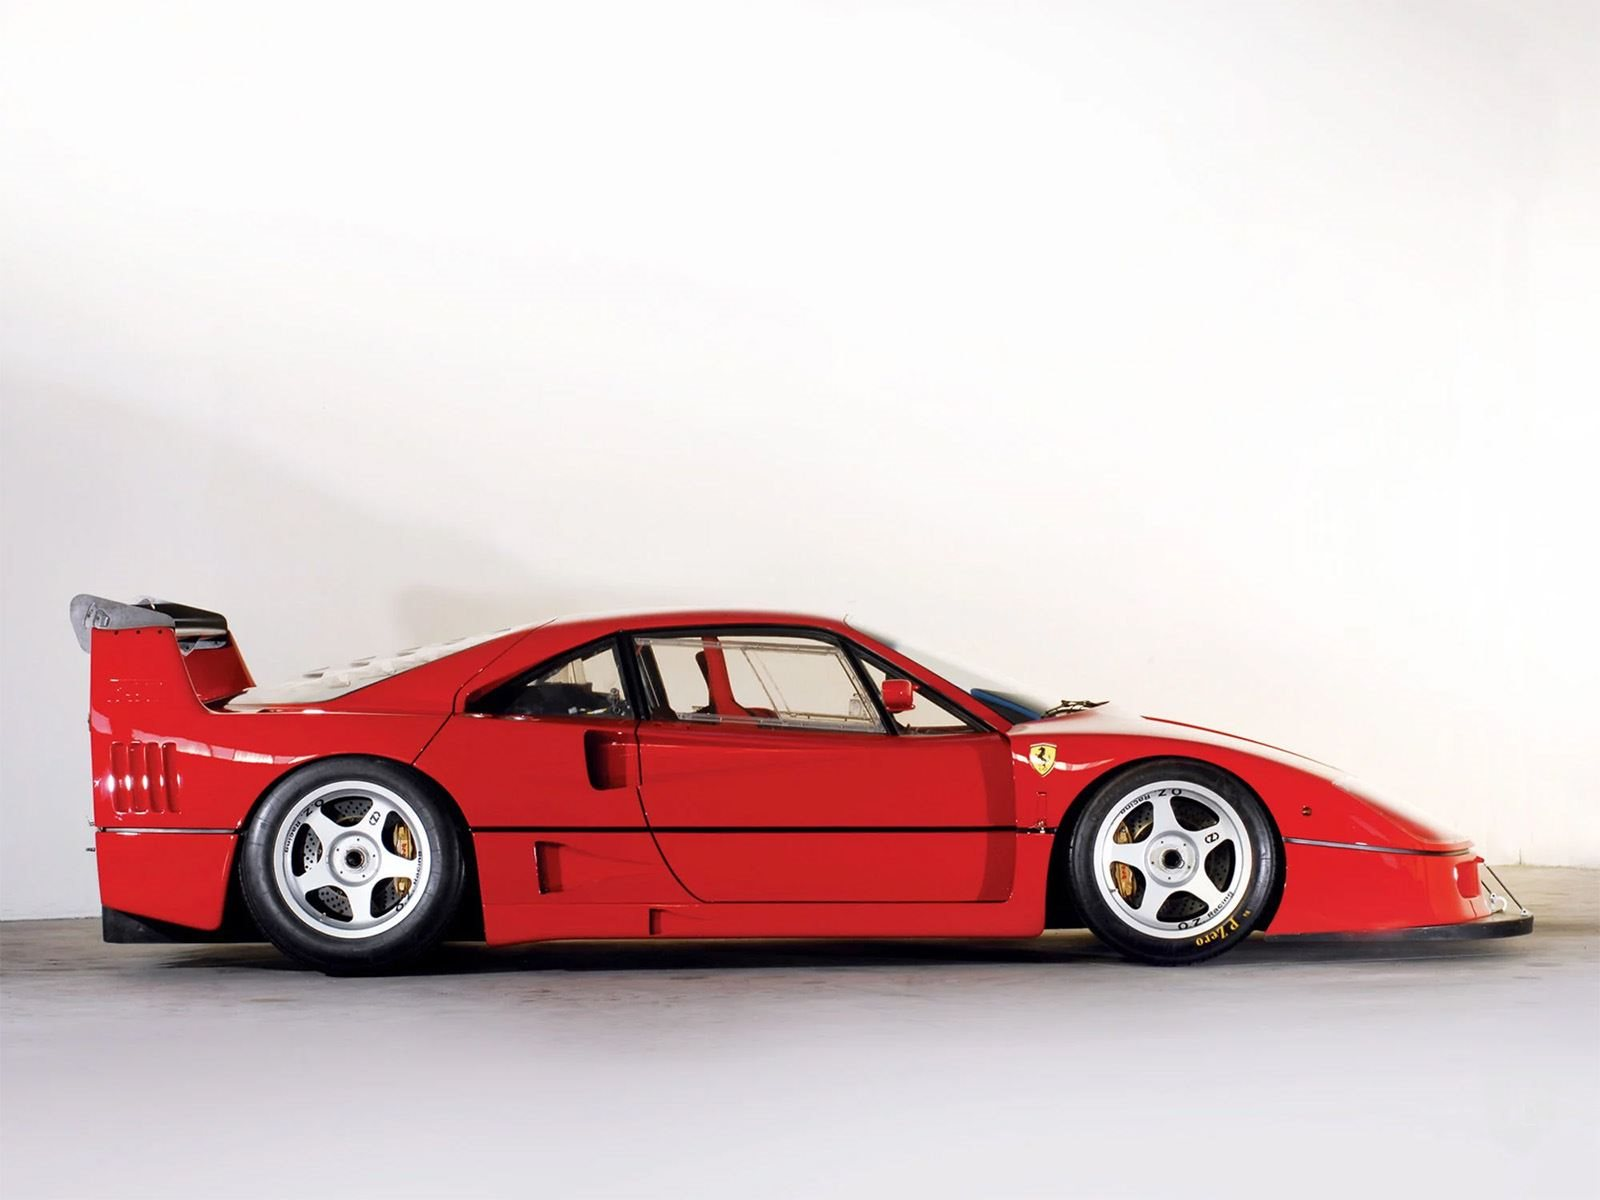 Ferrari F40 For Sale >> Extremely Rare Low Mileage Ferrari F40 Lm Looking For A New